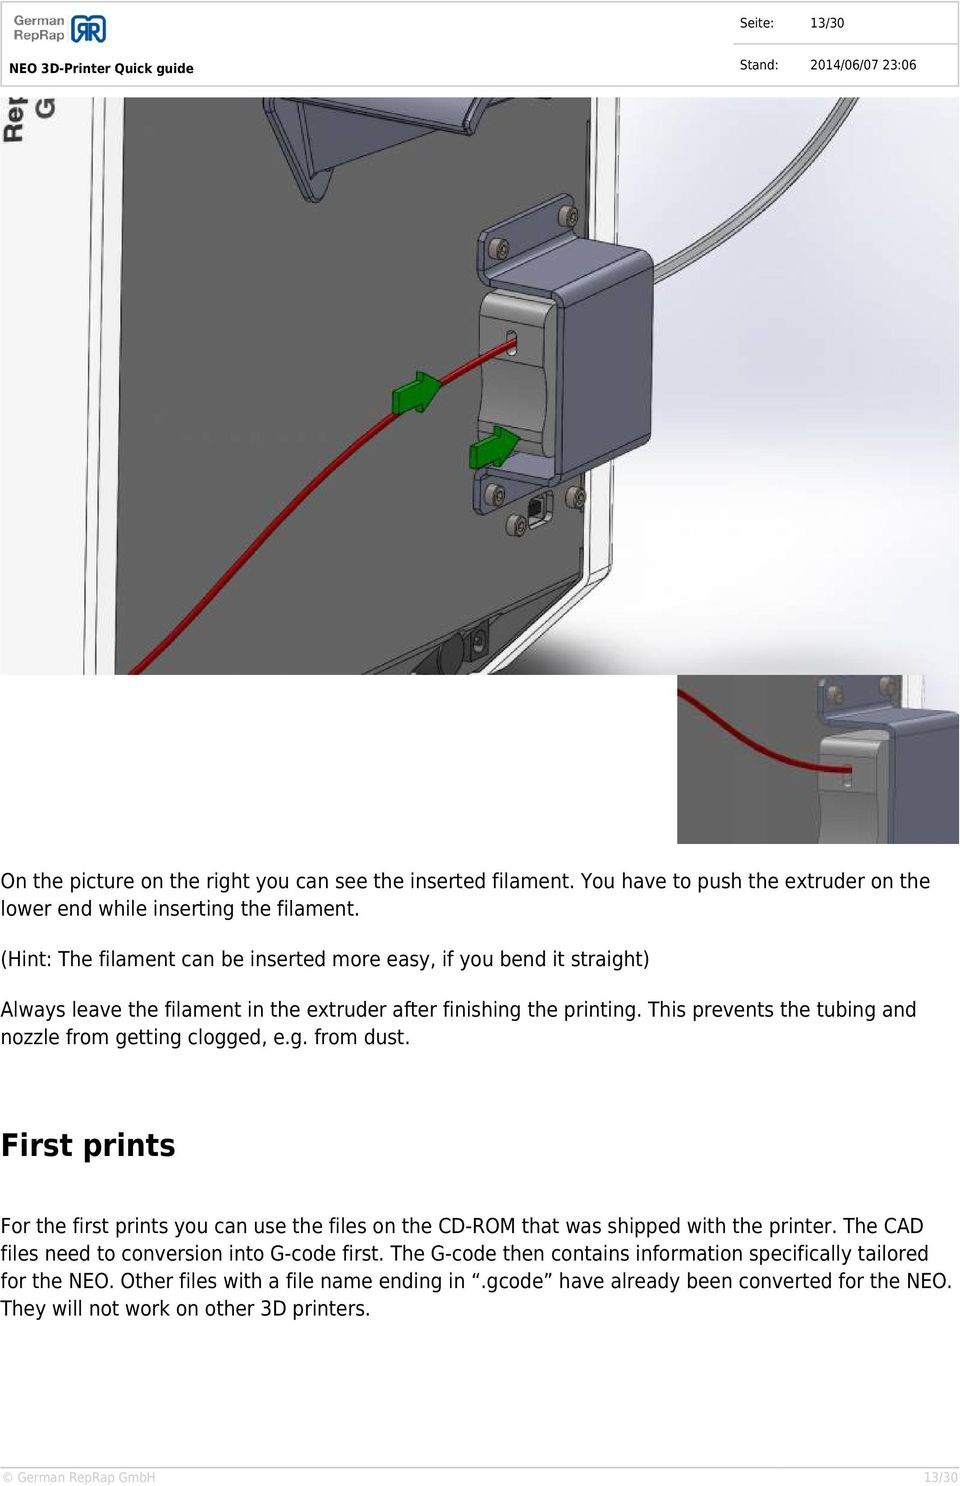 Neo 3d Printer Quick Guide German Reprap Gmbh Pdf Wiring Diagram This Prevents The Tubing And Nozzle From Getting Clogged Eg Dust First Prints